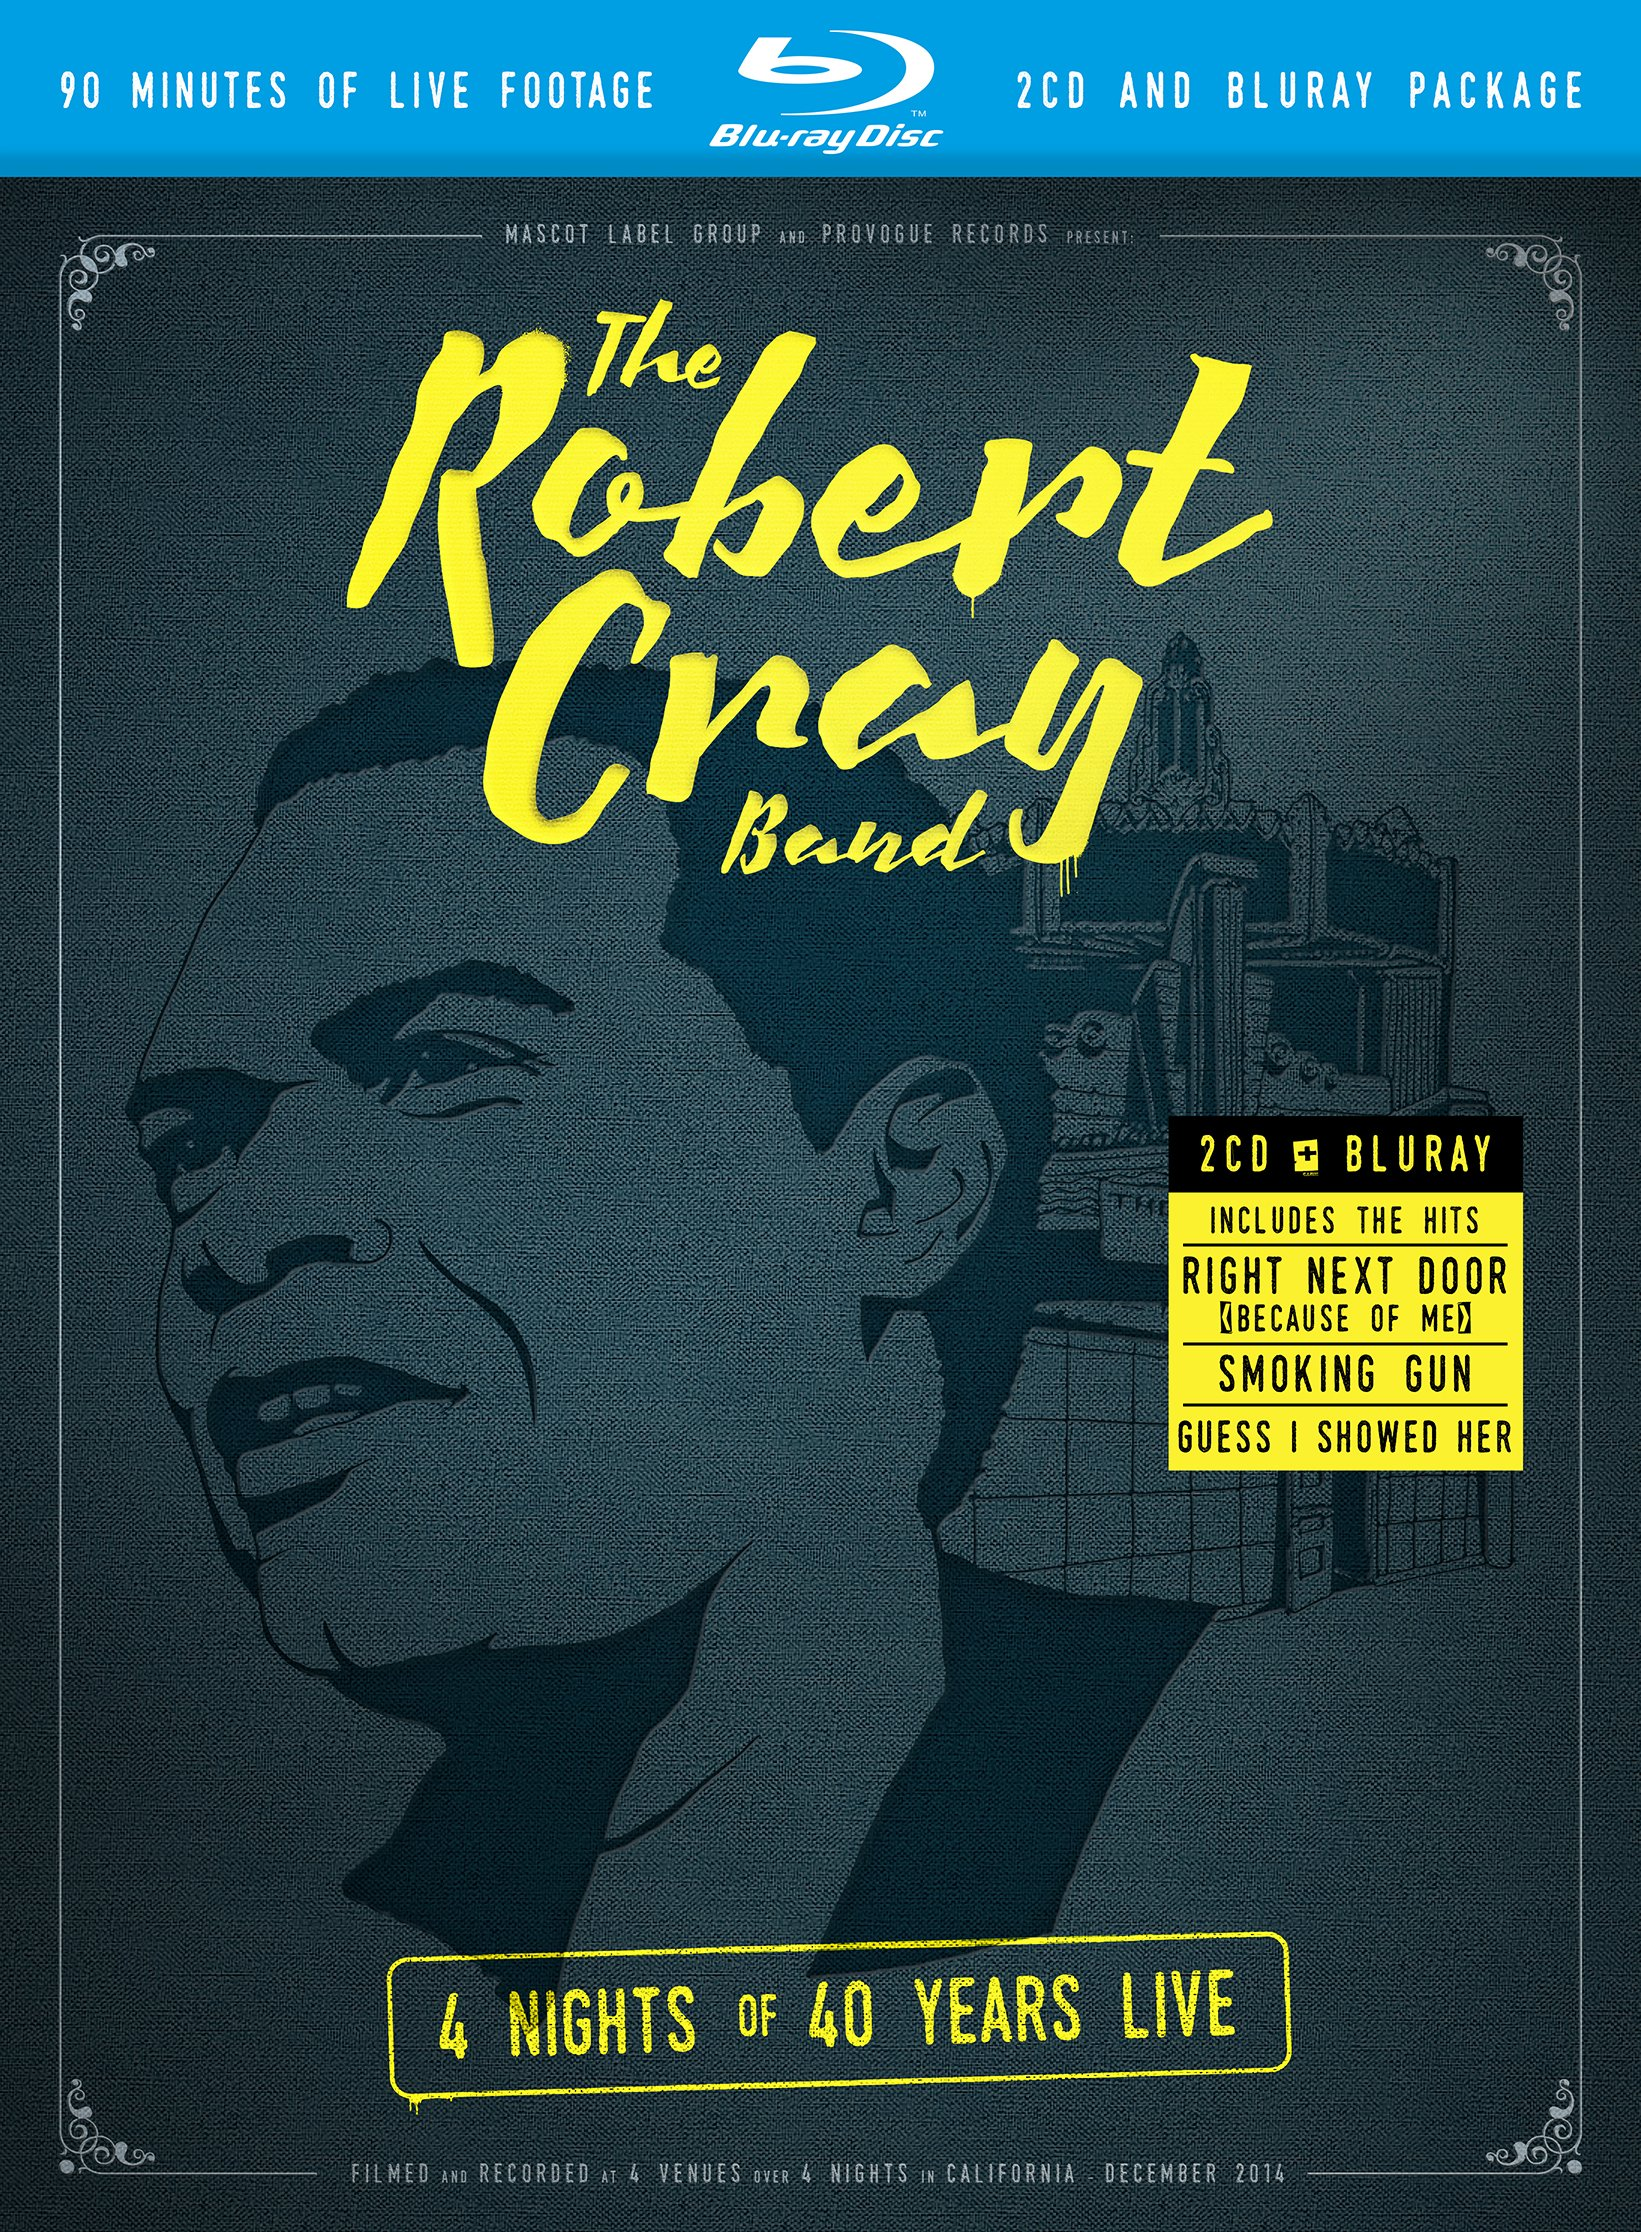 The Robert Cray Band – 4 Nights Of 40 Years (2015) 720p+1080p MBluRay x264-TREBLE